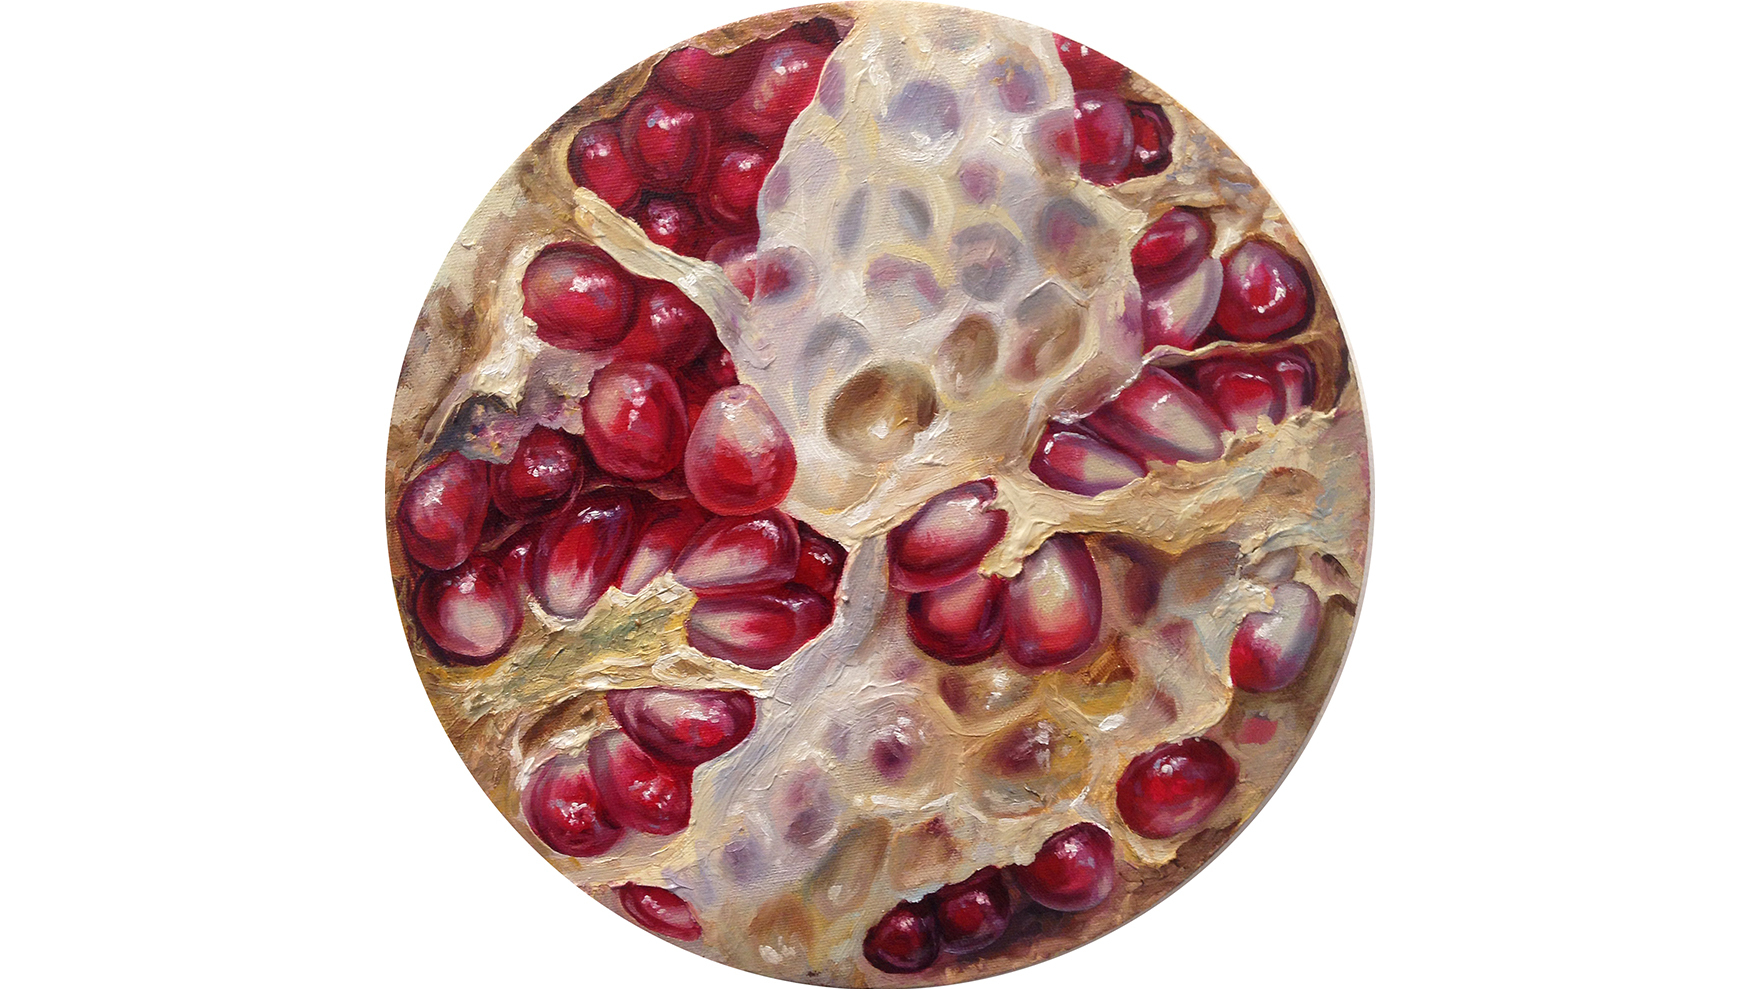 #26, Oil on canvas, 12 inches diameter, 2015